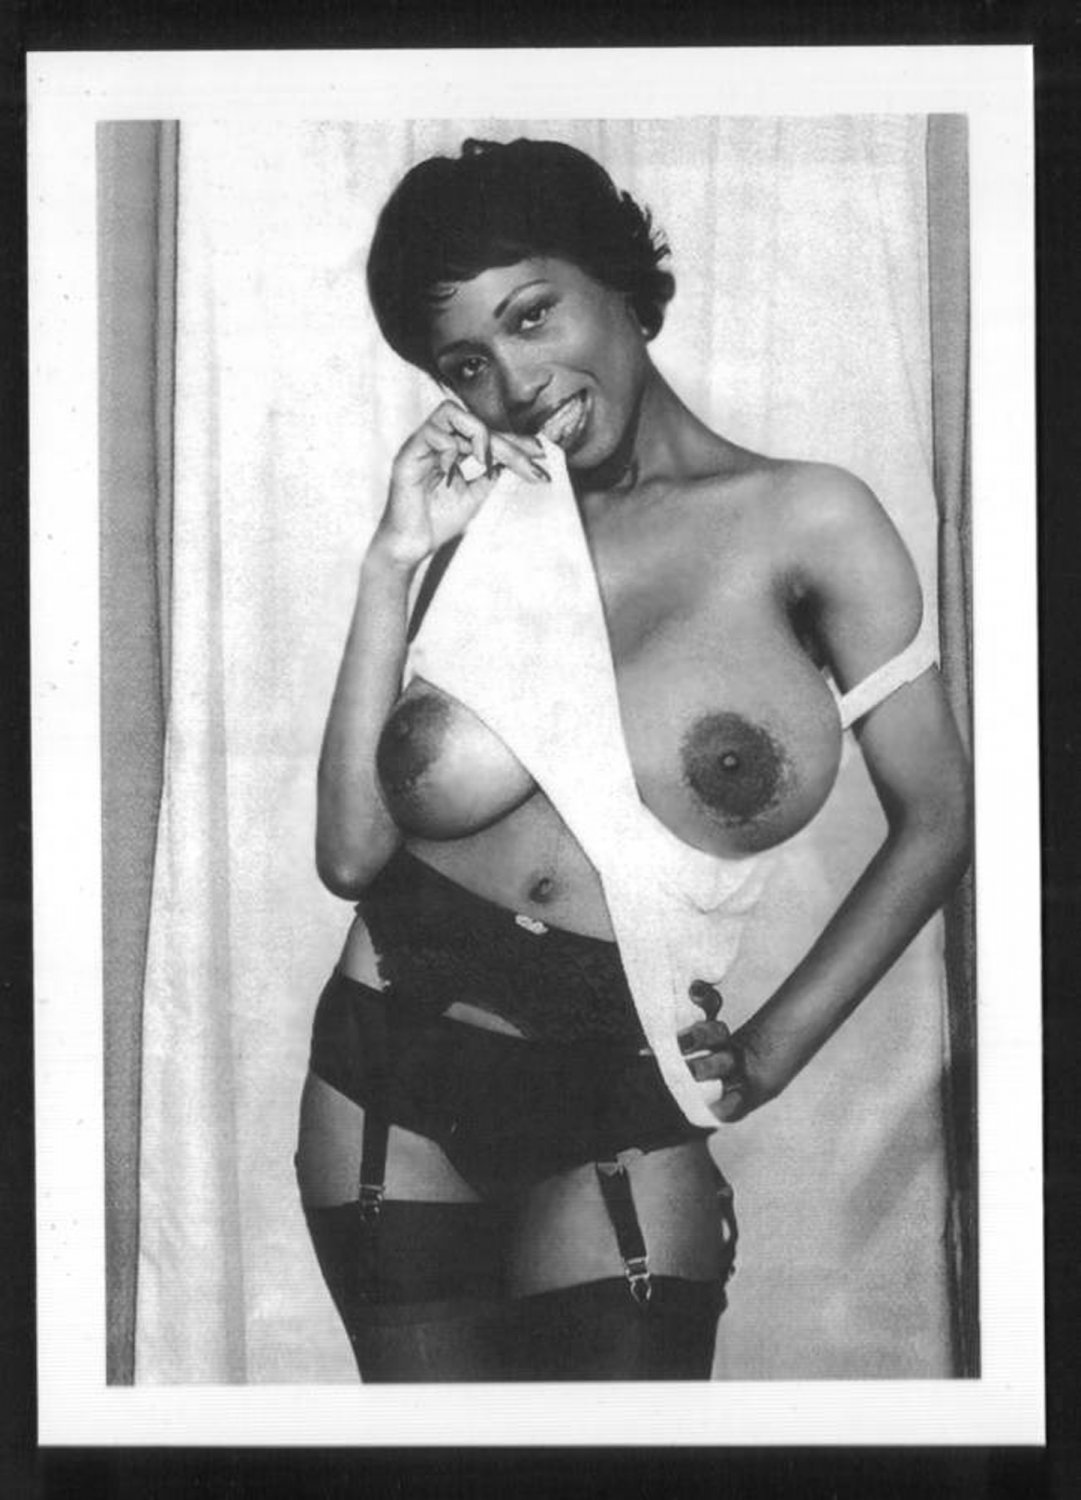 EBONY SYLVIA MCFARLAND TOPLESS NUDE HUGE BREASTS NEW REPRINT 5X7 SM-89